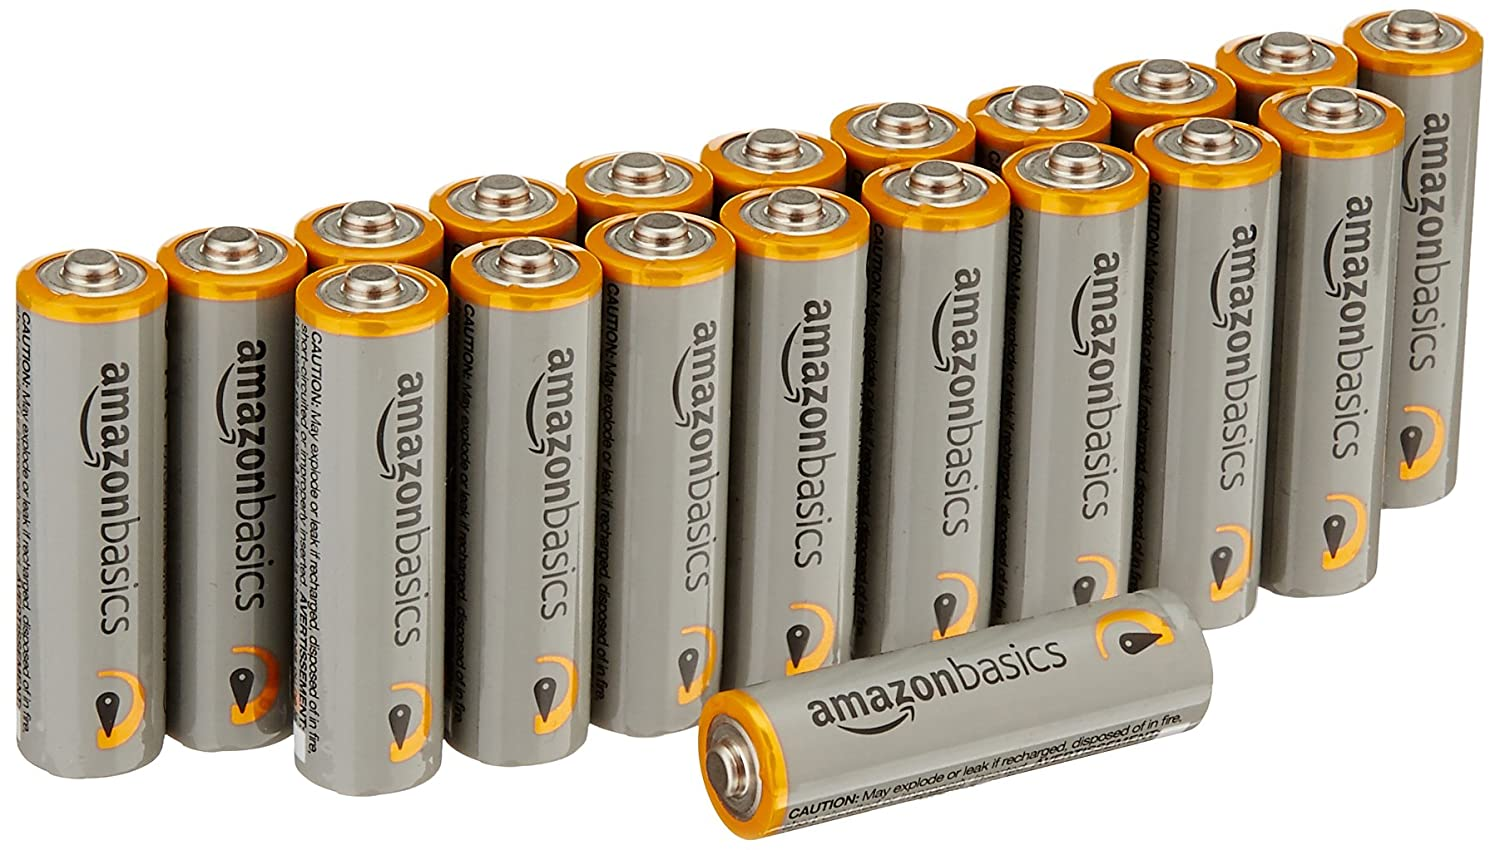 Basics AAA Performance Alkaline Batteries (20-Pack) - Packaging May Vary ALK AAA20FFP-U AMZ